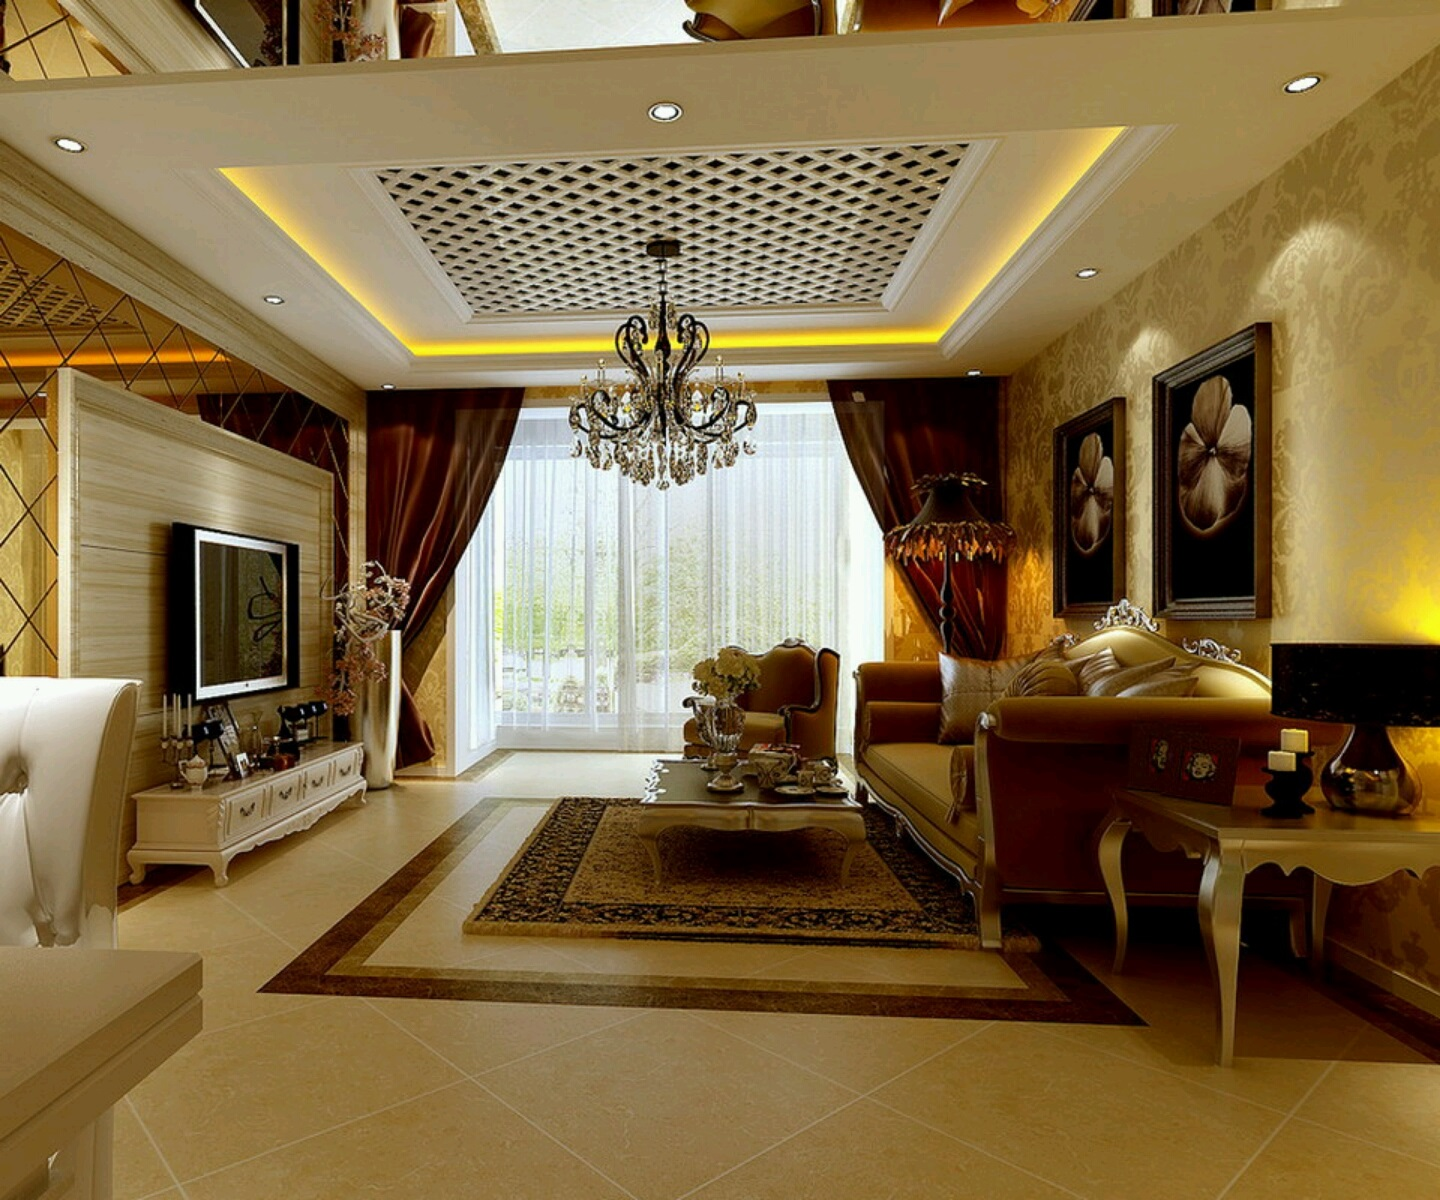 Luxury House Interior Living Room: Ver Fotos De Casas Bonitas. Escoja Y Vote Por Sus Fotos De